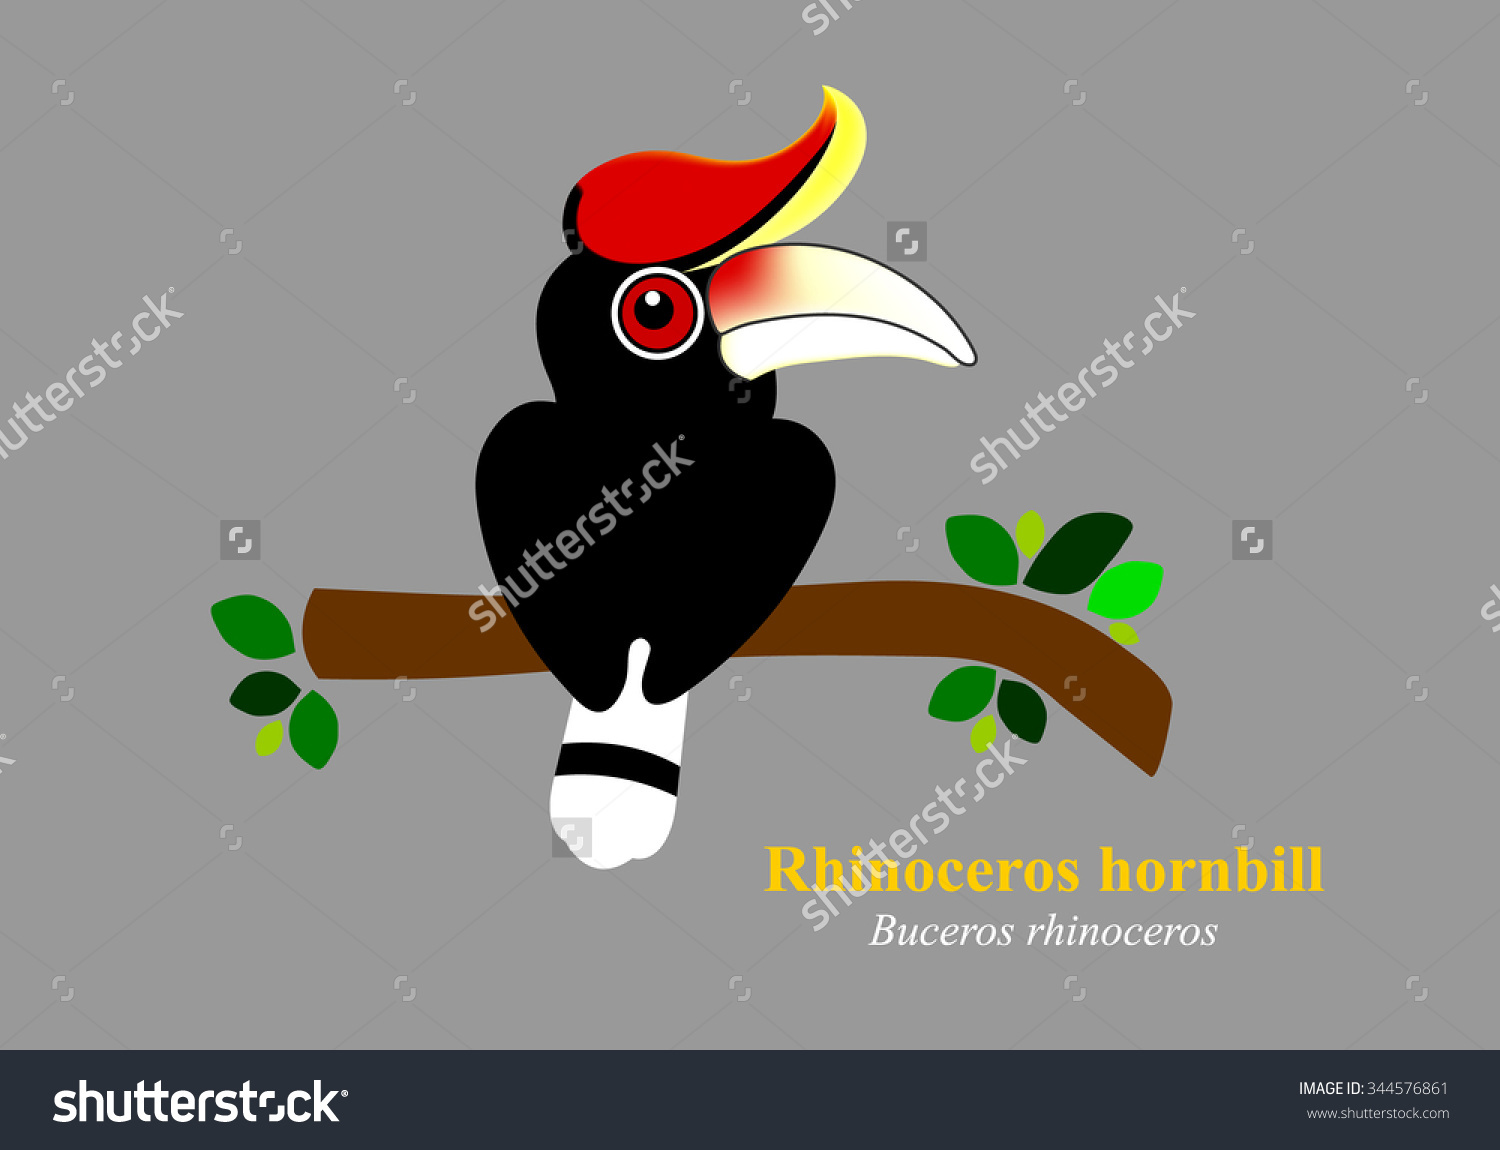 Rhinoceros Hornbill clipart #20, Download drawings